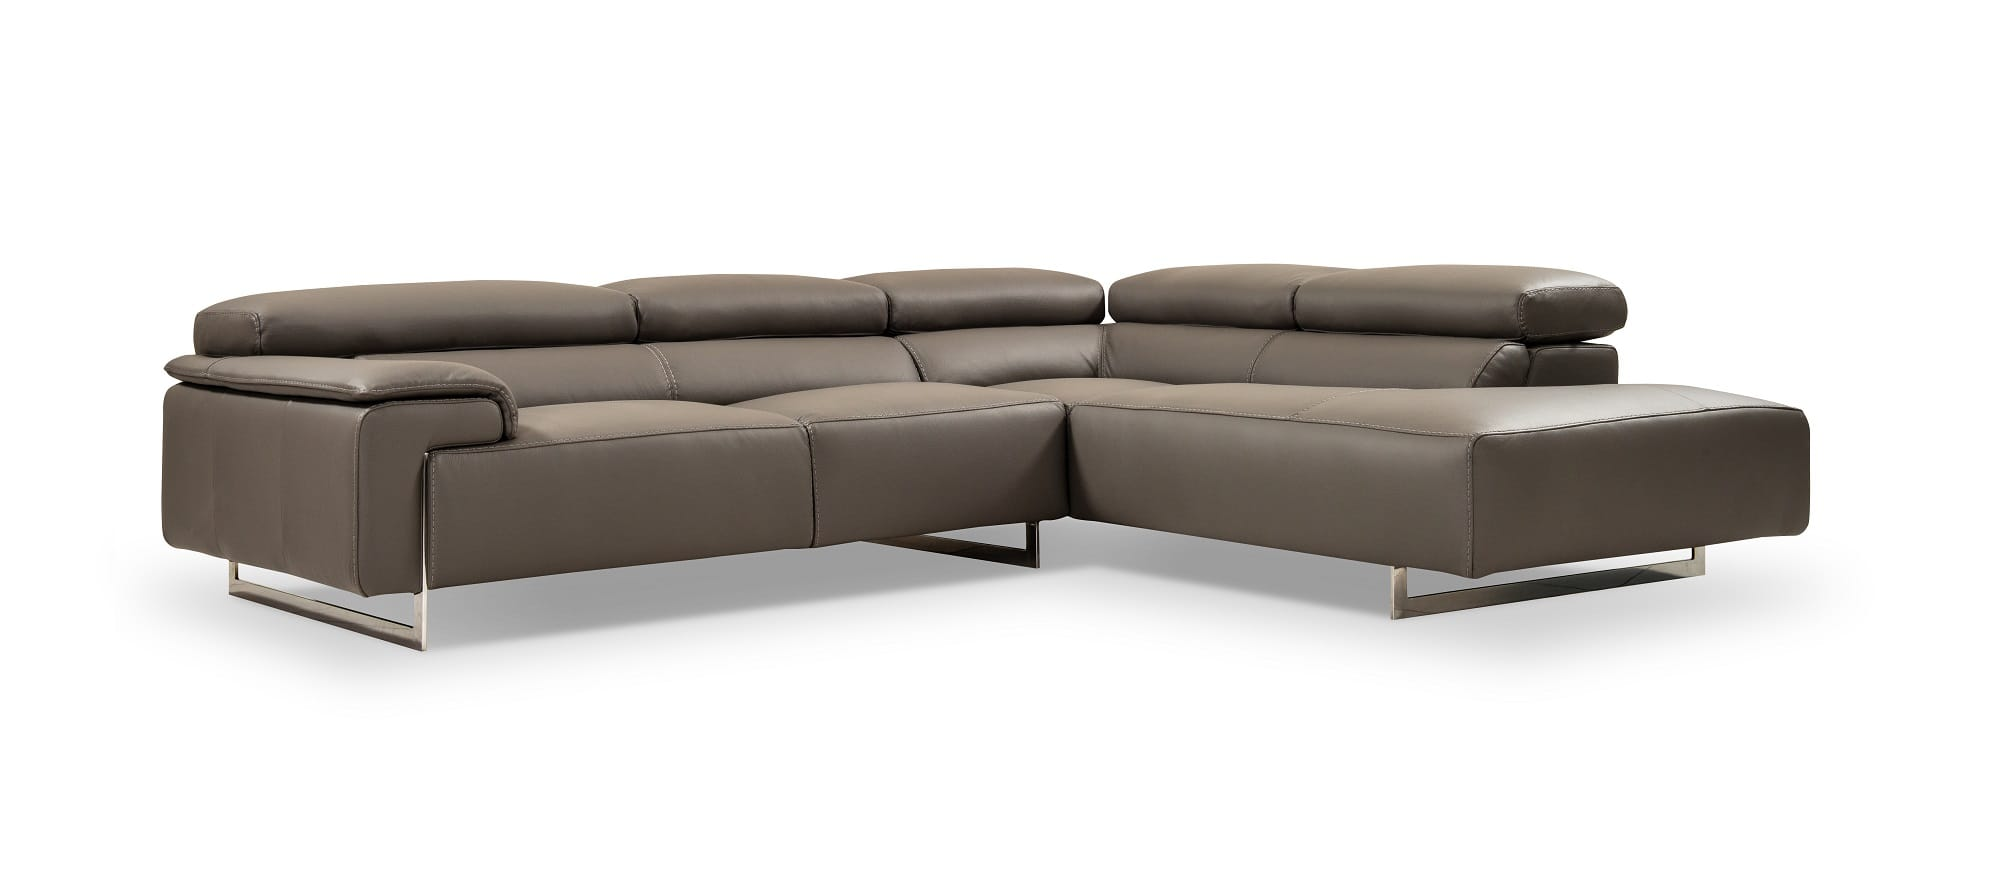 I794 Premium Grey Leather Sectional Sofa by J&M Furniture